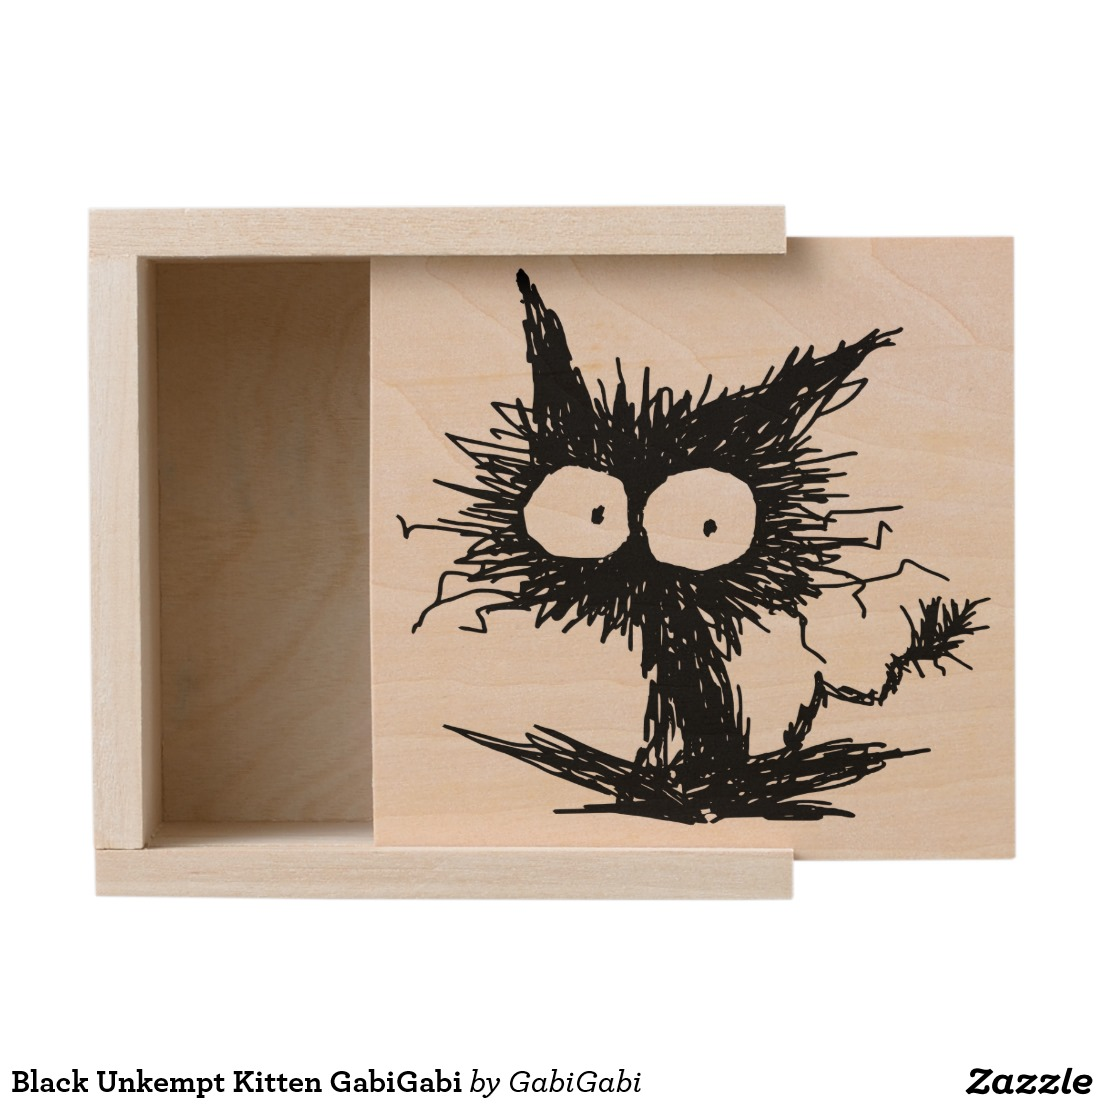 Black Unkempt Kitten GabiGabi Wooden Keepsake Box